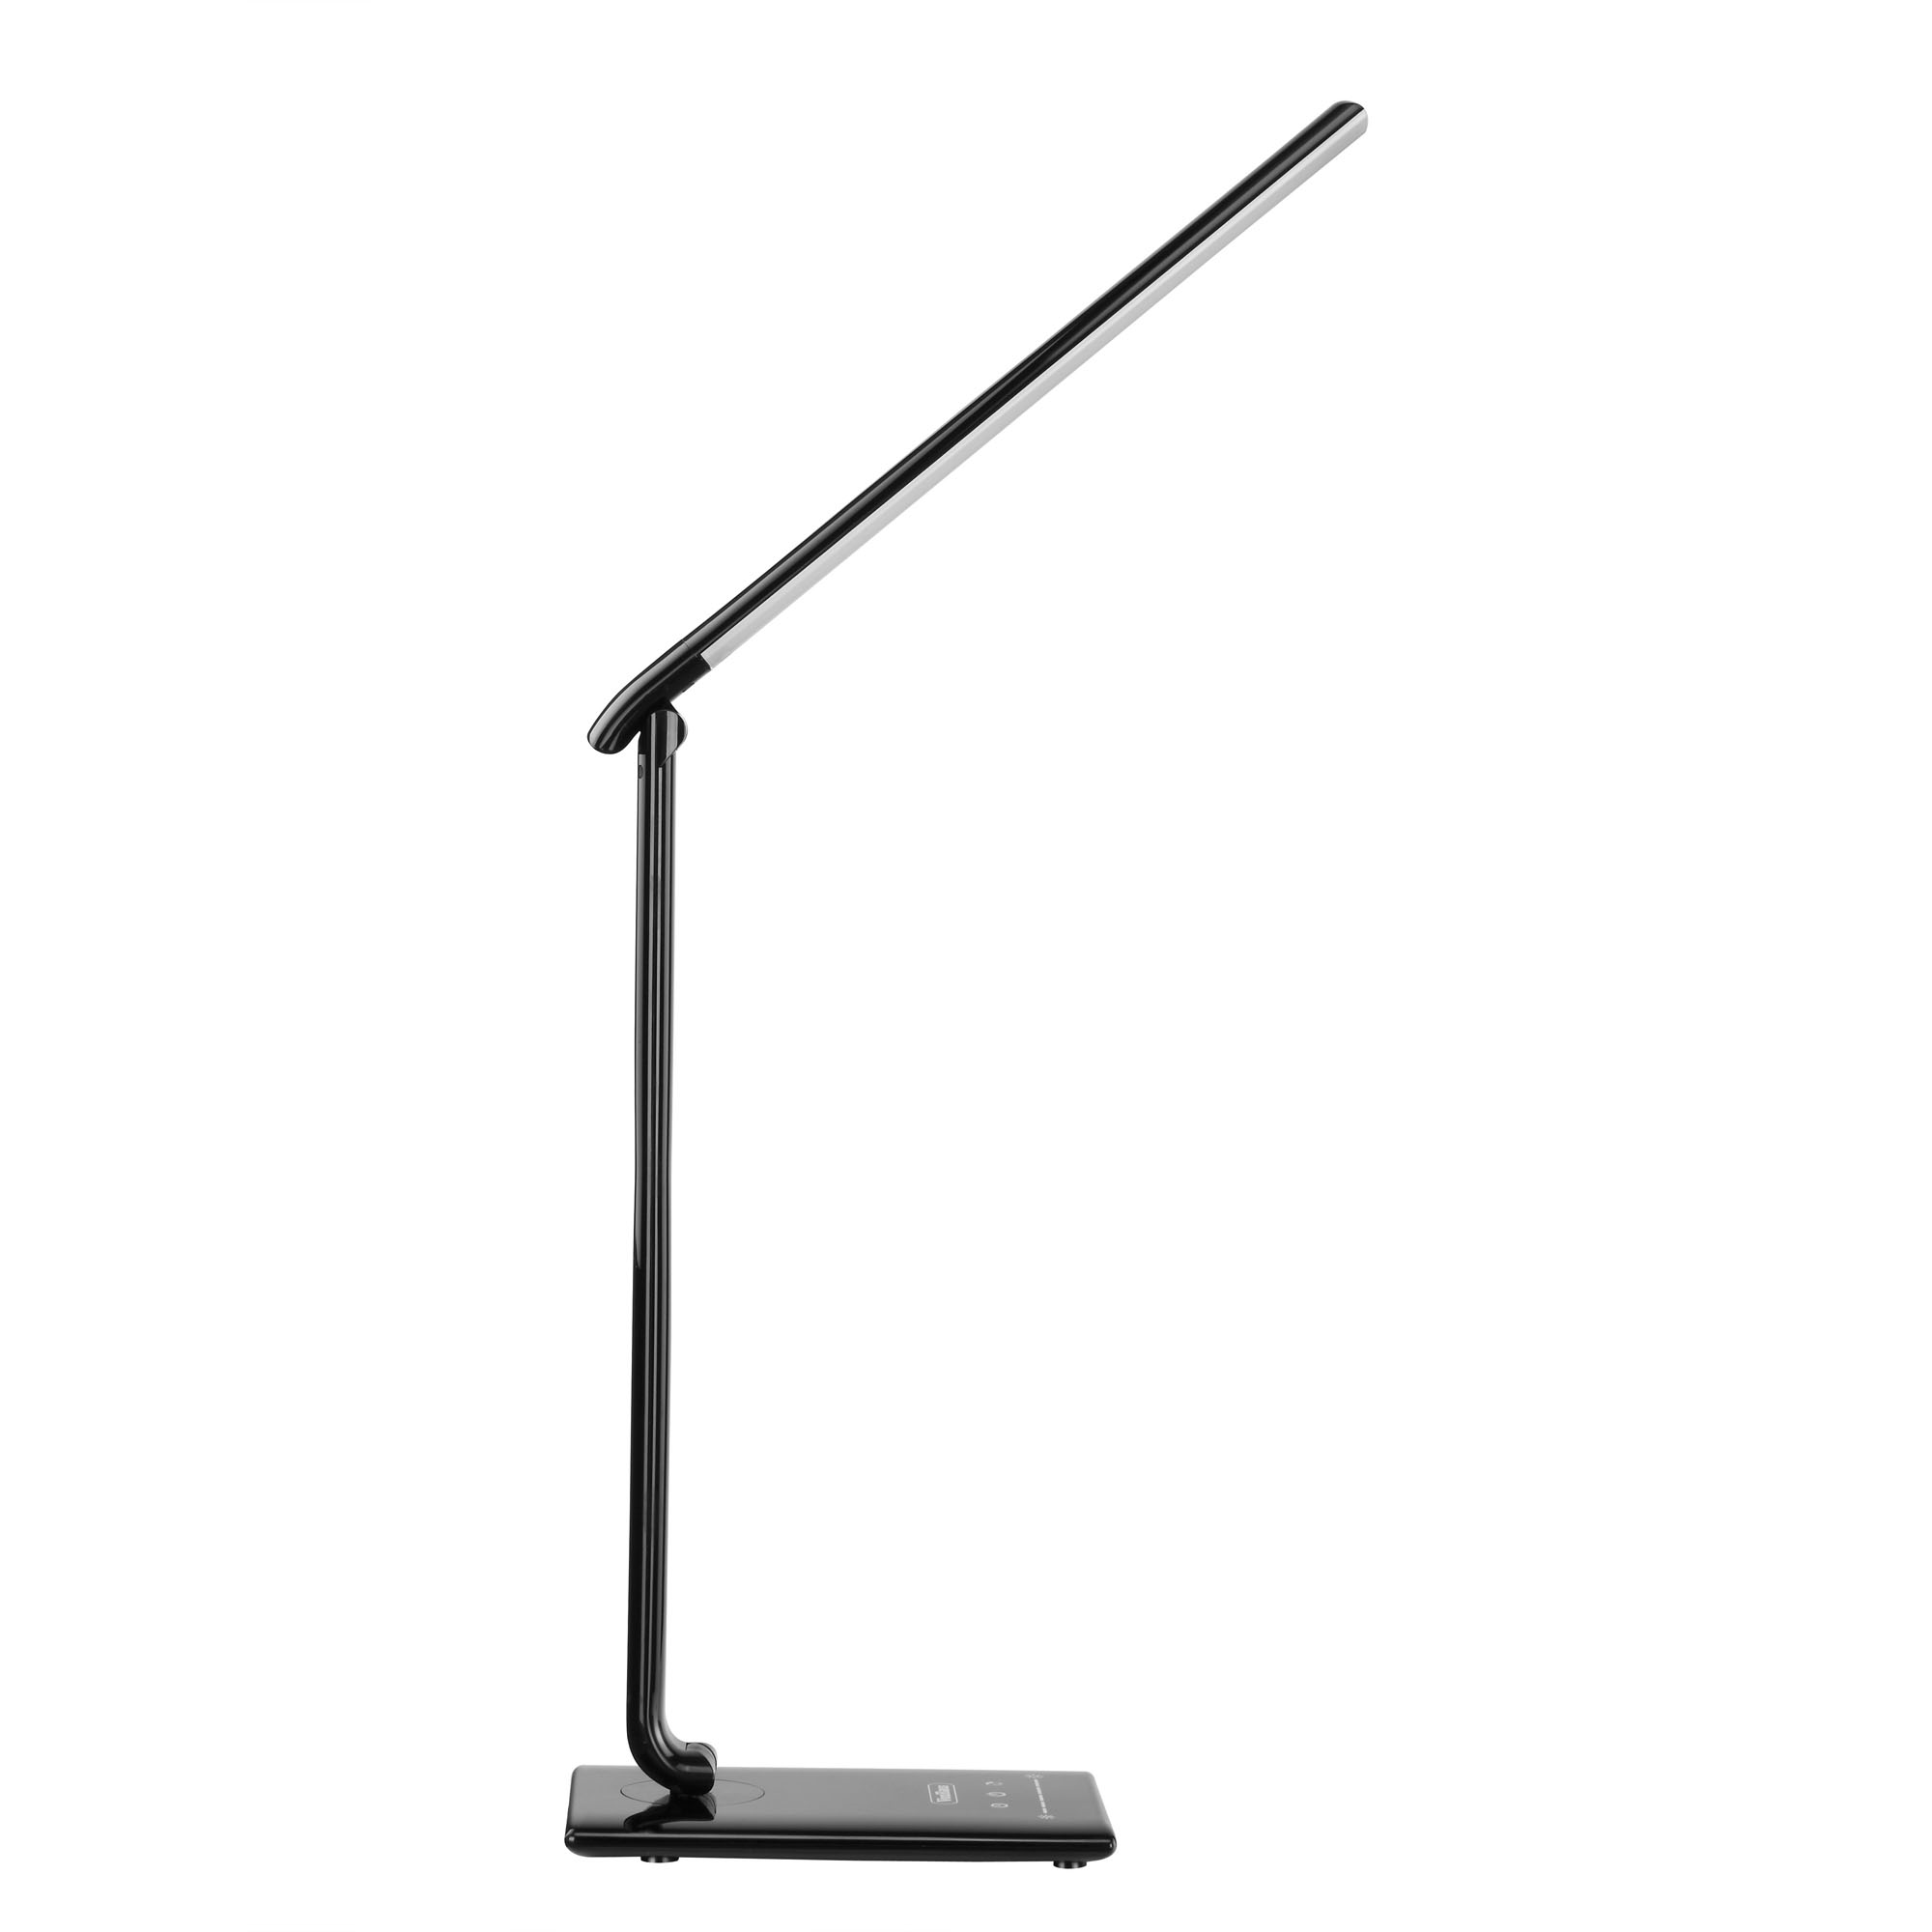 eofficeproducts black power mm table technologies mountable luna silicone w vision lamp led furniture office lumens bulb for light decor surge height ltd desk